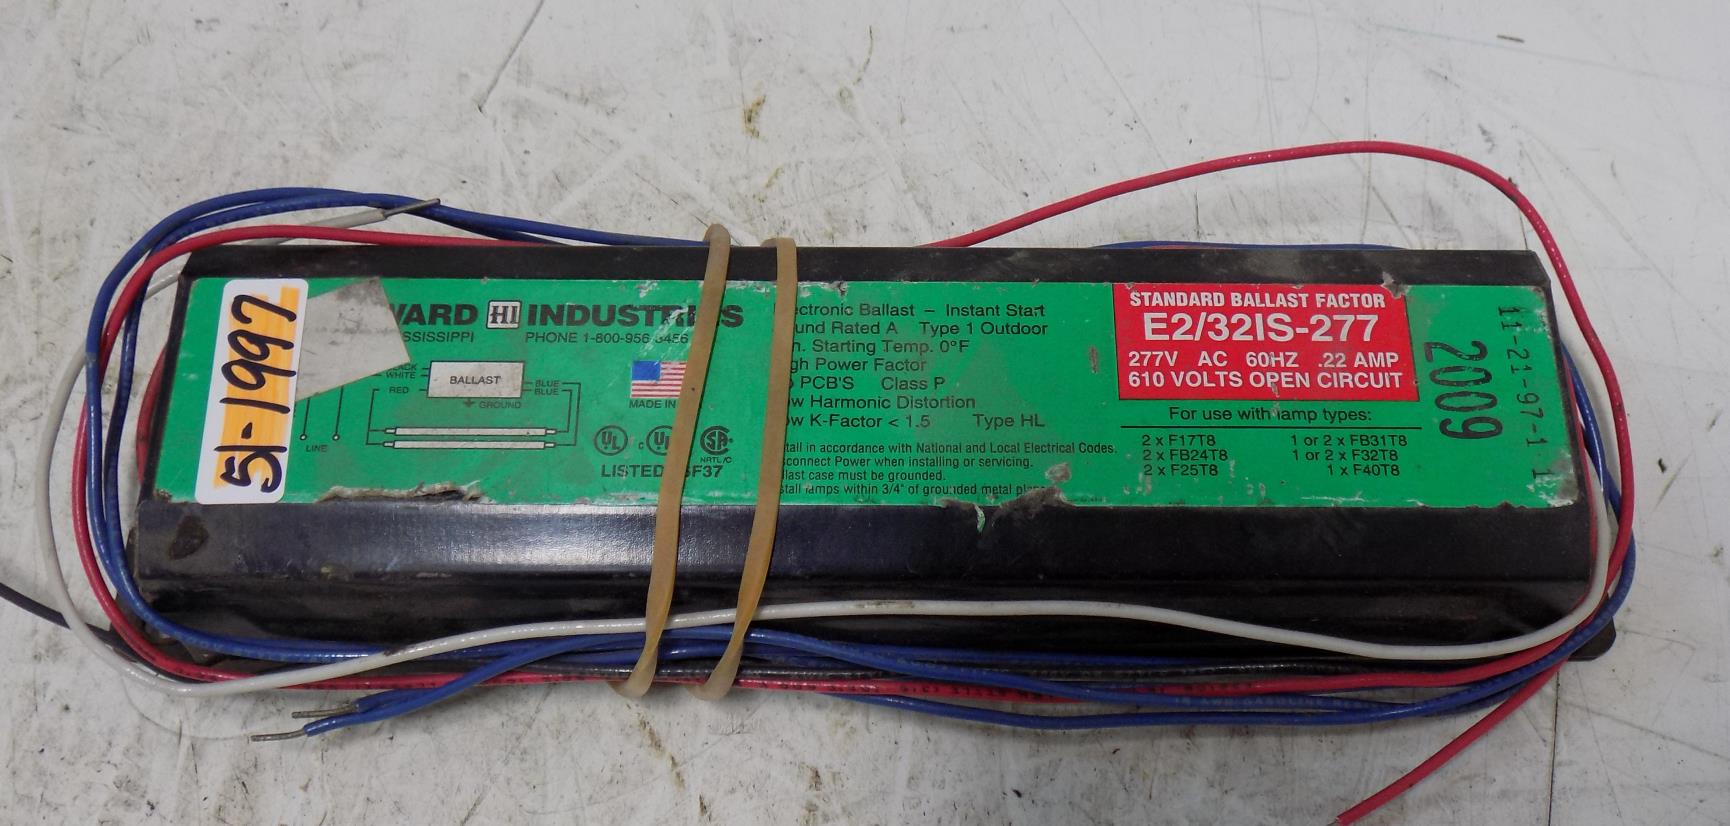 2 F32T8 Howard Industries E2//32IS-277 277-Volt Ballast for or FB24T8 Bulb 277V